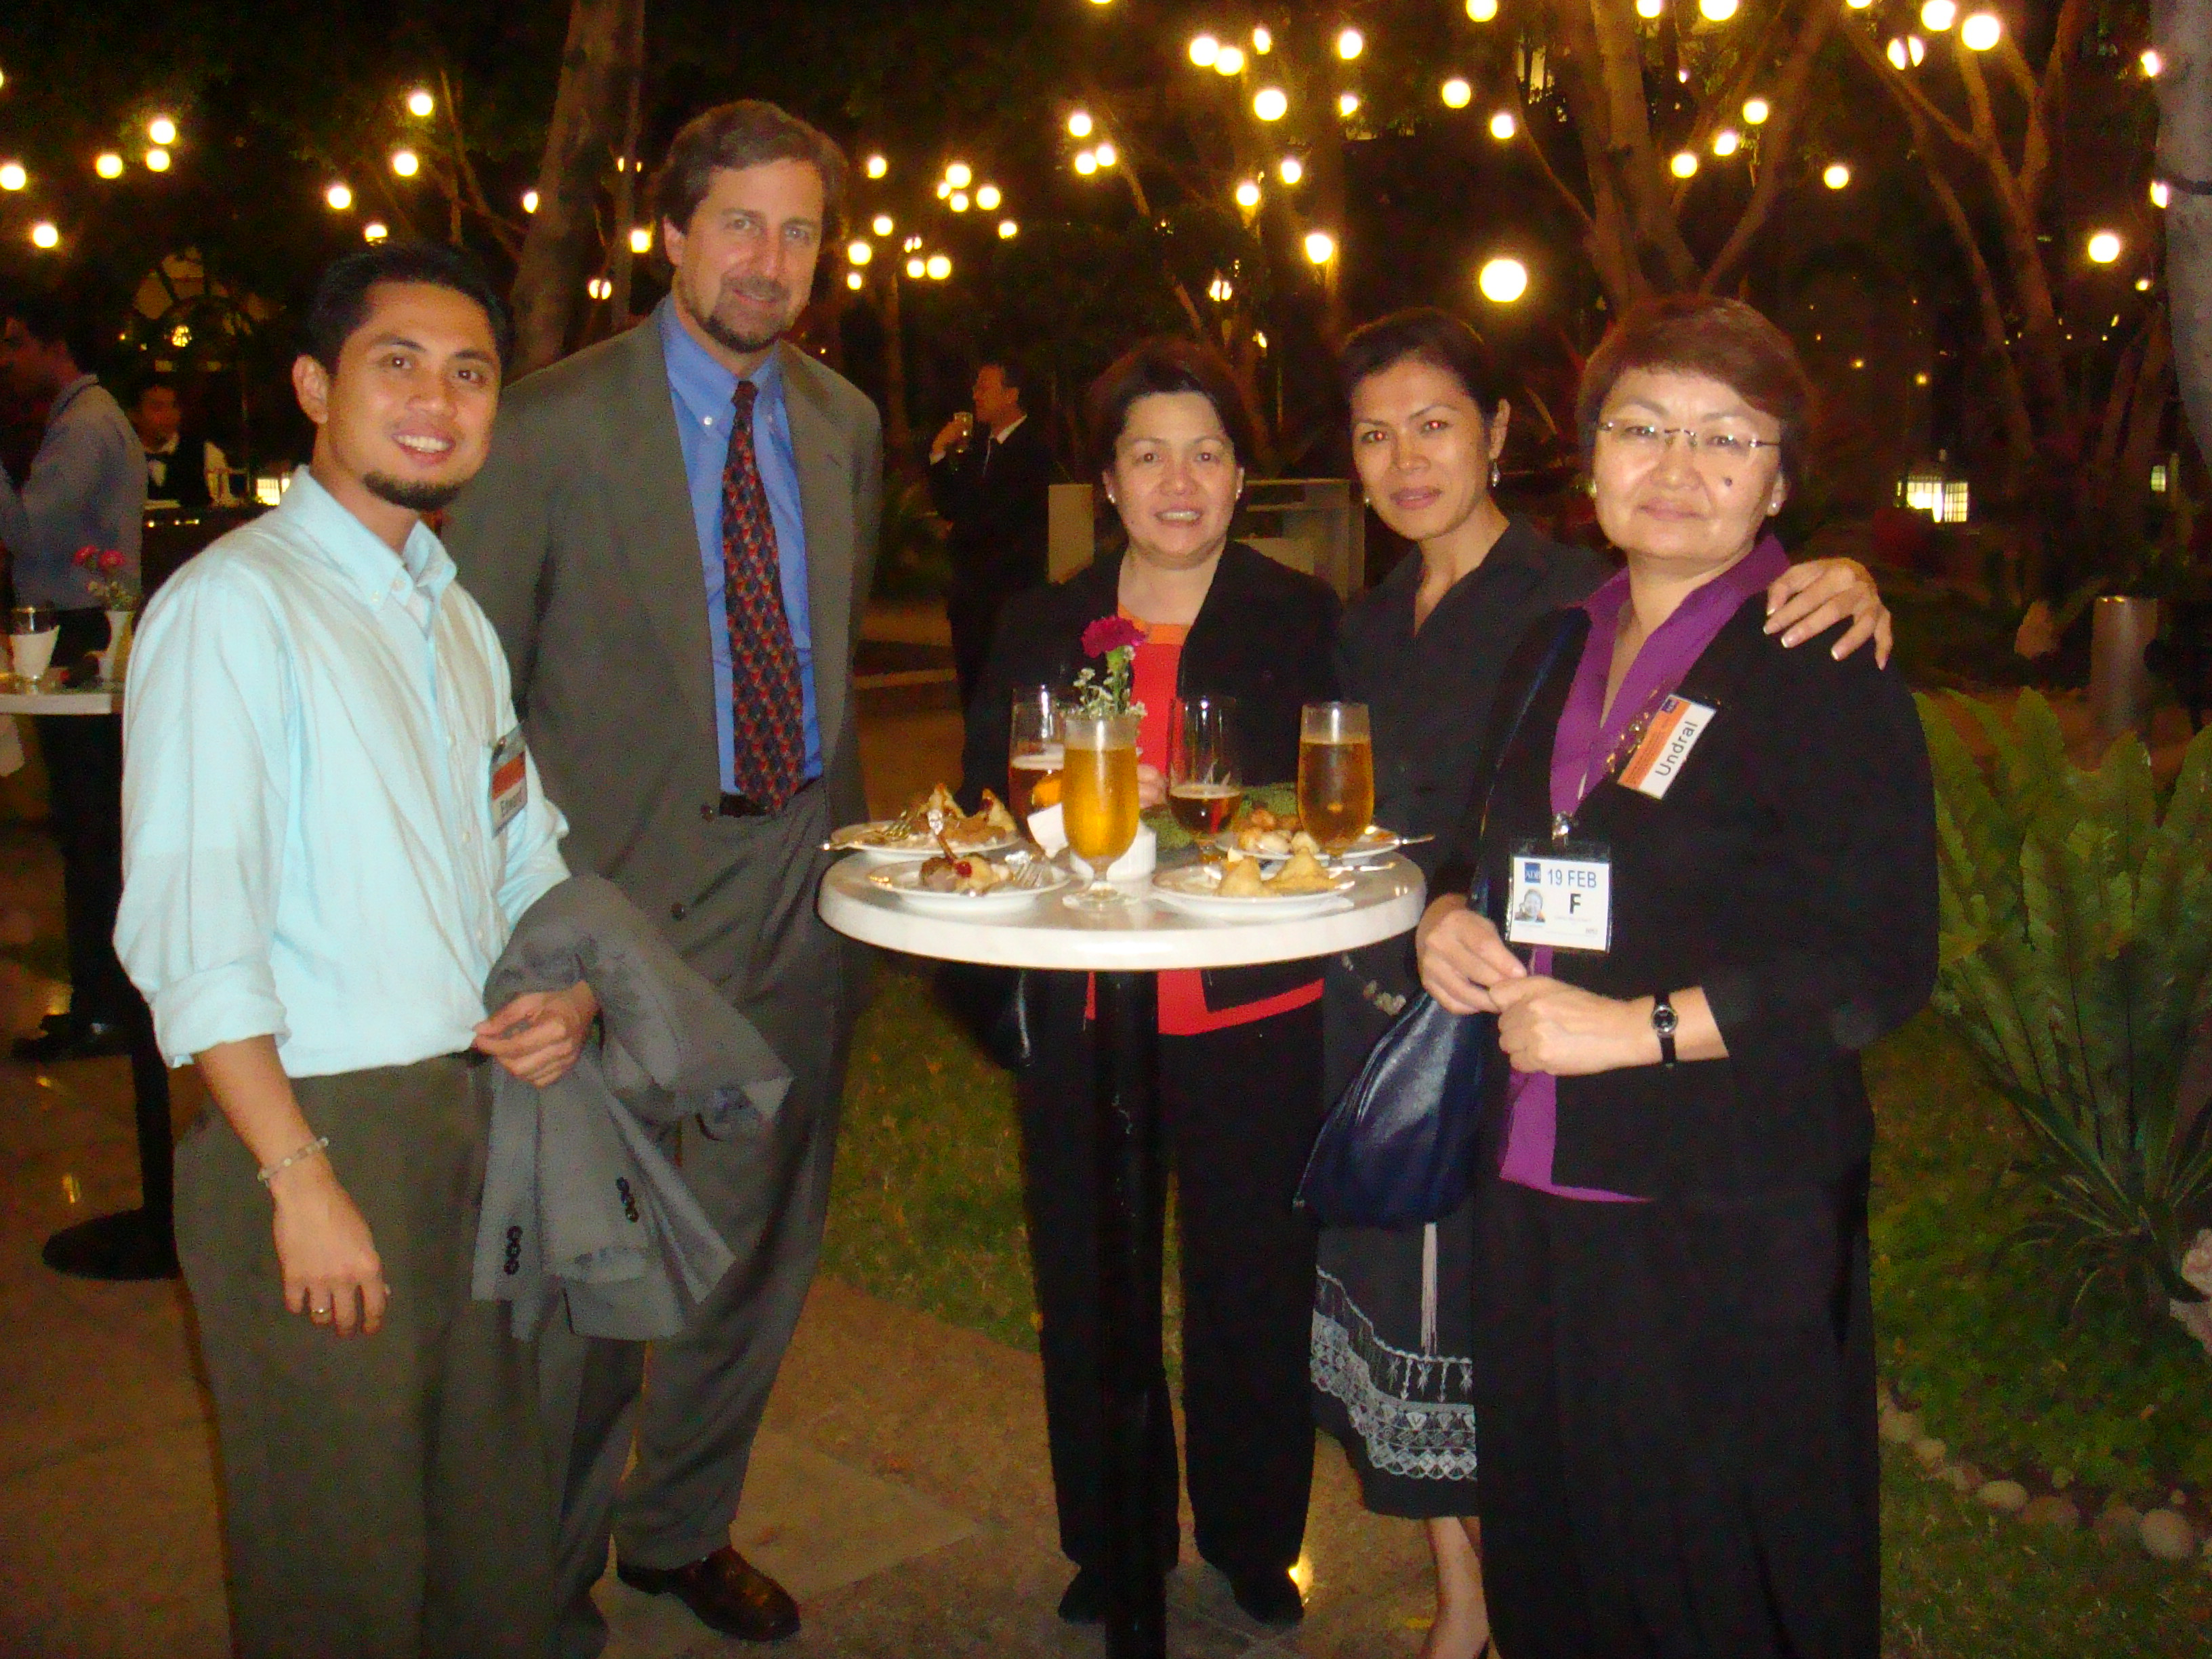 Theary Seng with Eric Henry, Helen Garcia, Edward Gacusana, Undral Gombodorj at reception ADB garden Manila, the Philippines, 17 Feb. 2010